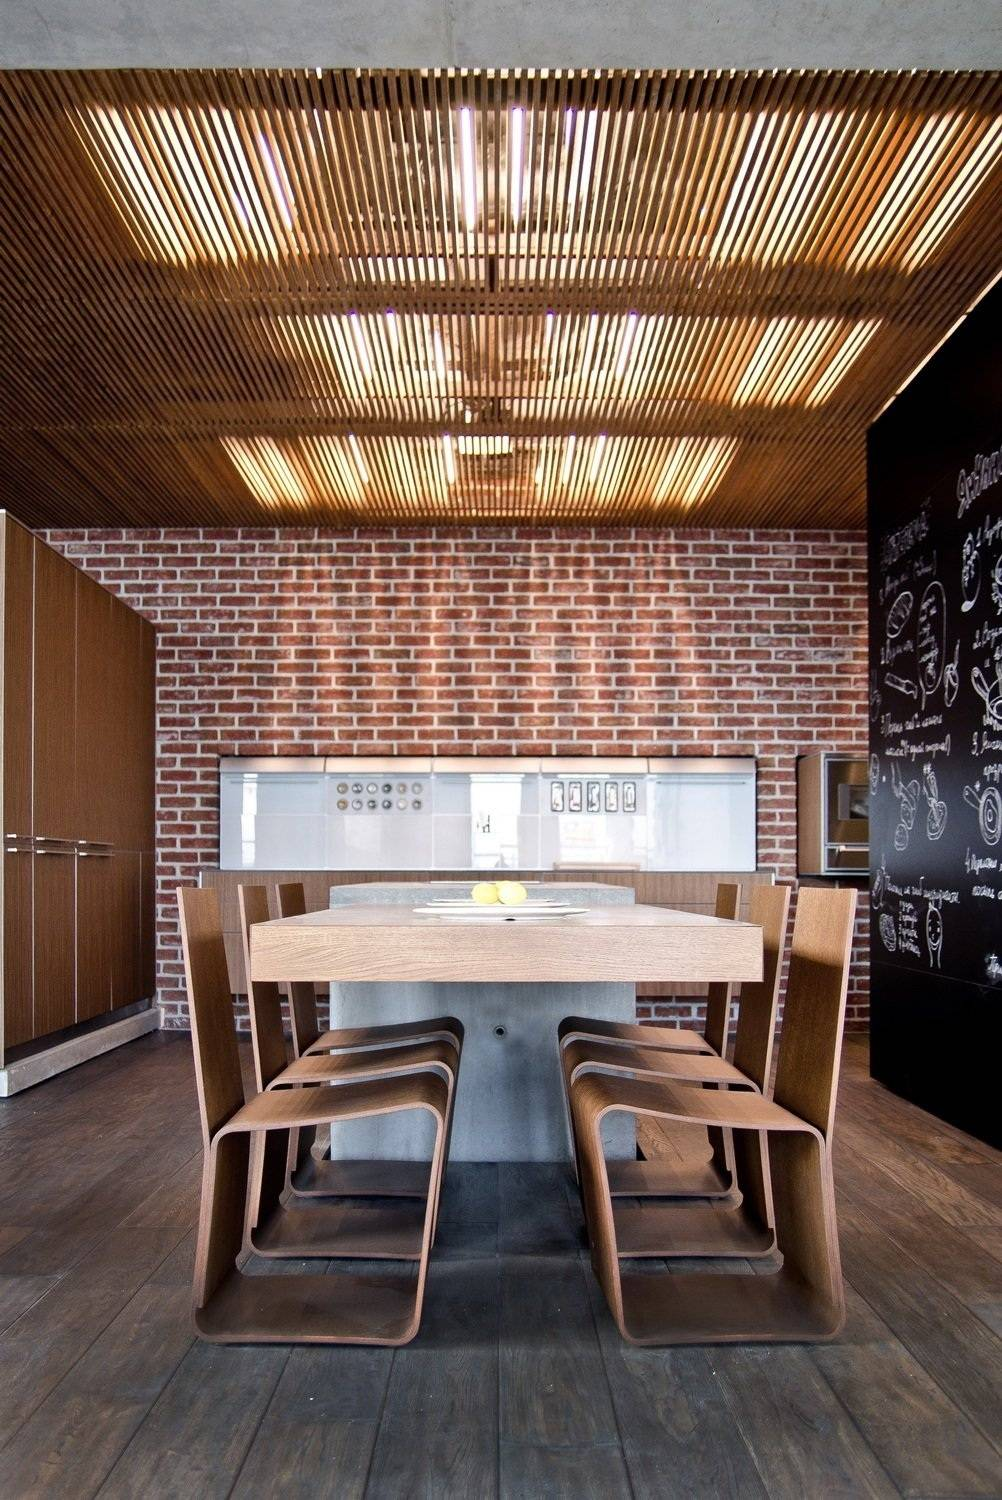 loft kitchen wall decor - brick wall tiles